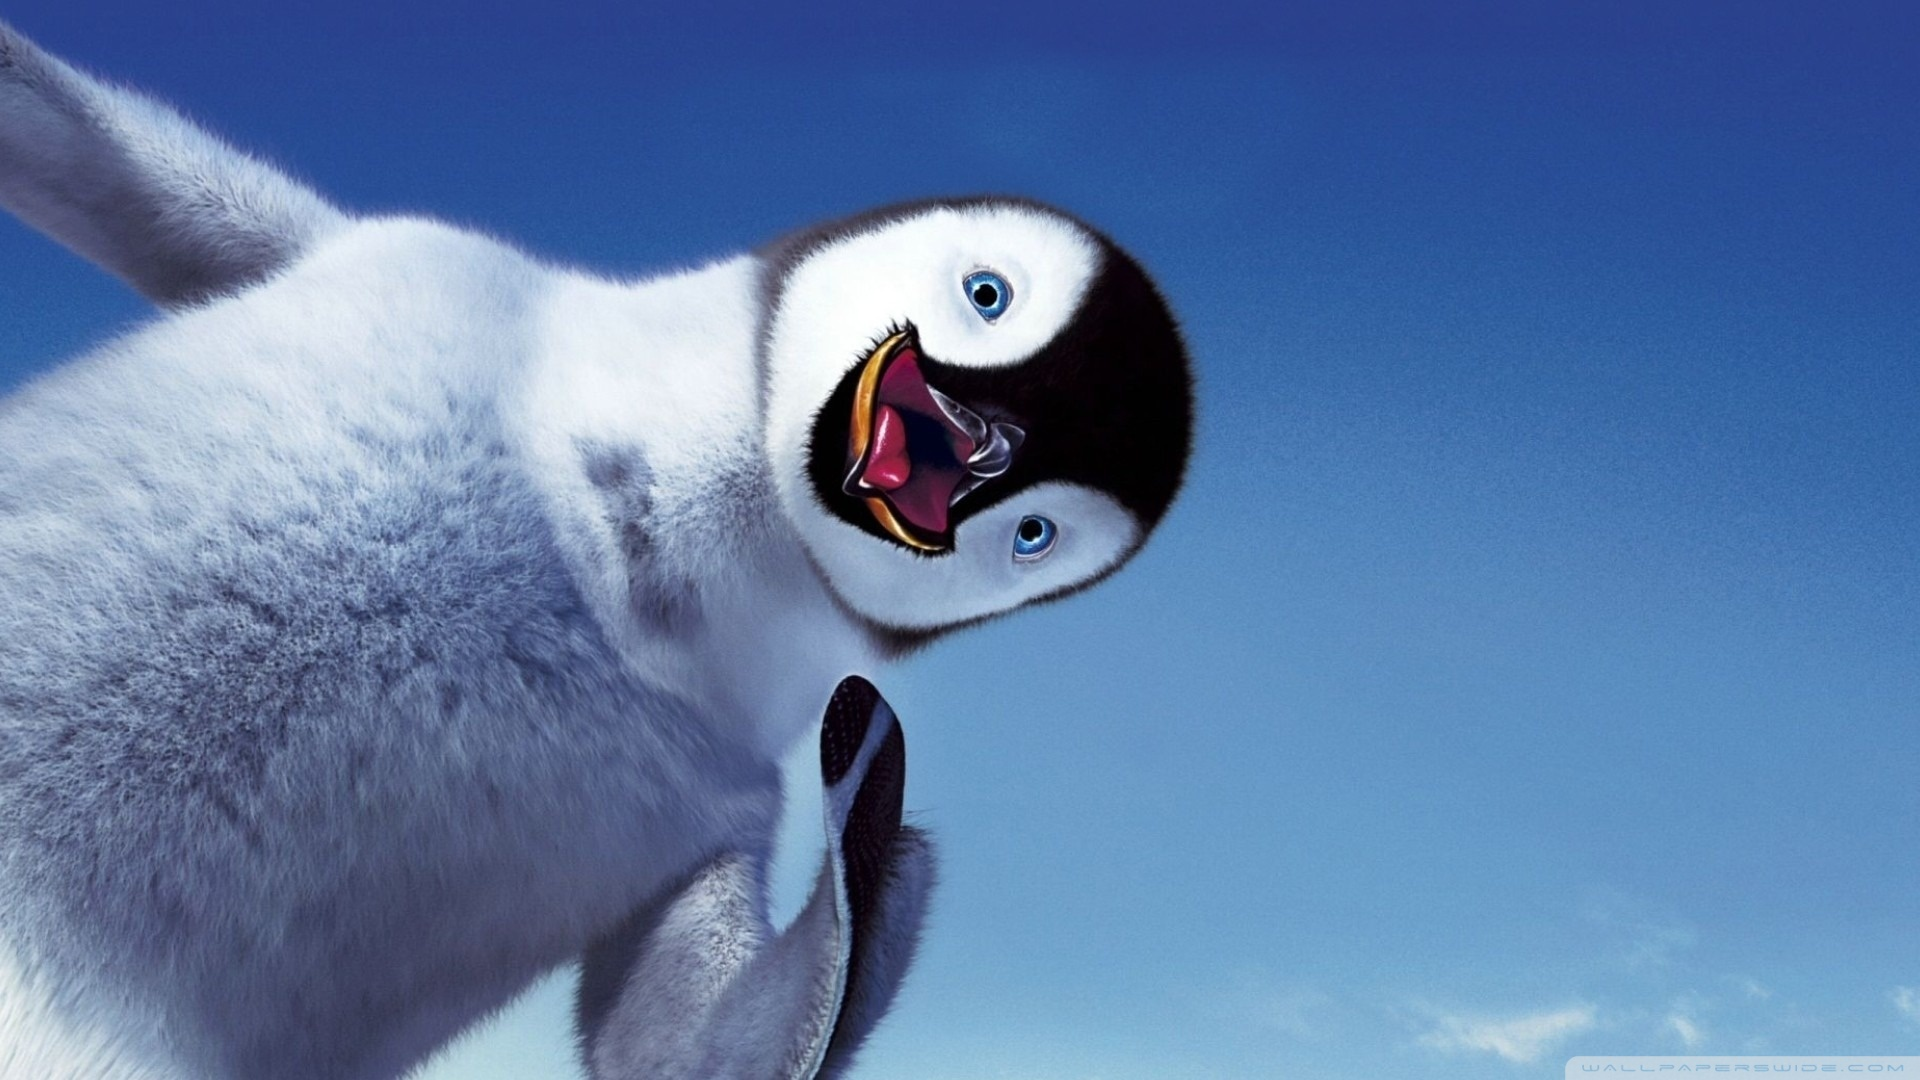 happy feet two ❤ uhd desktop wallpaper for ultra hd 4k 8k